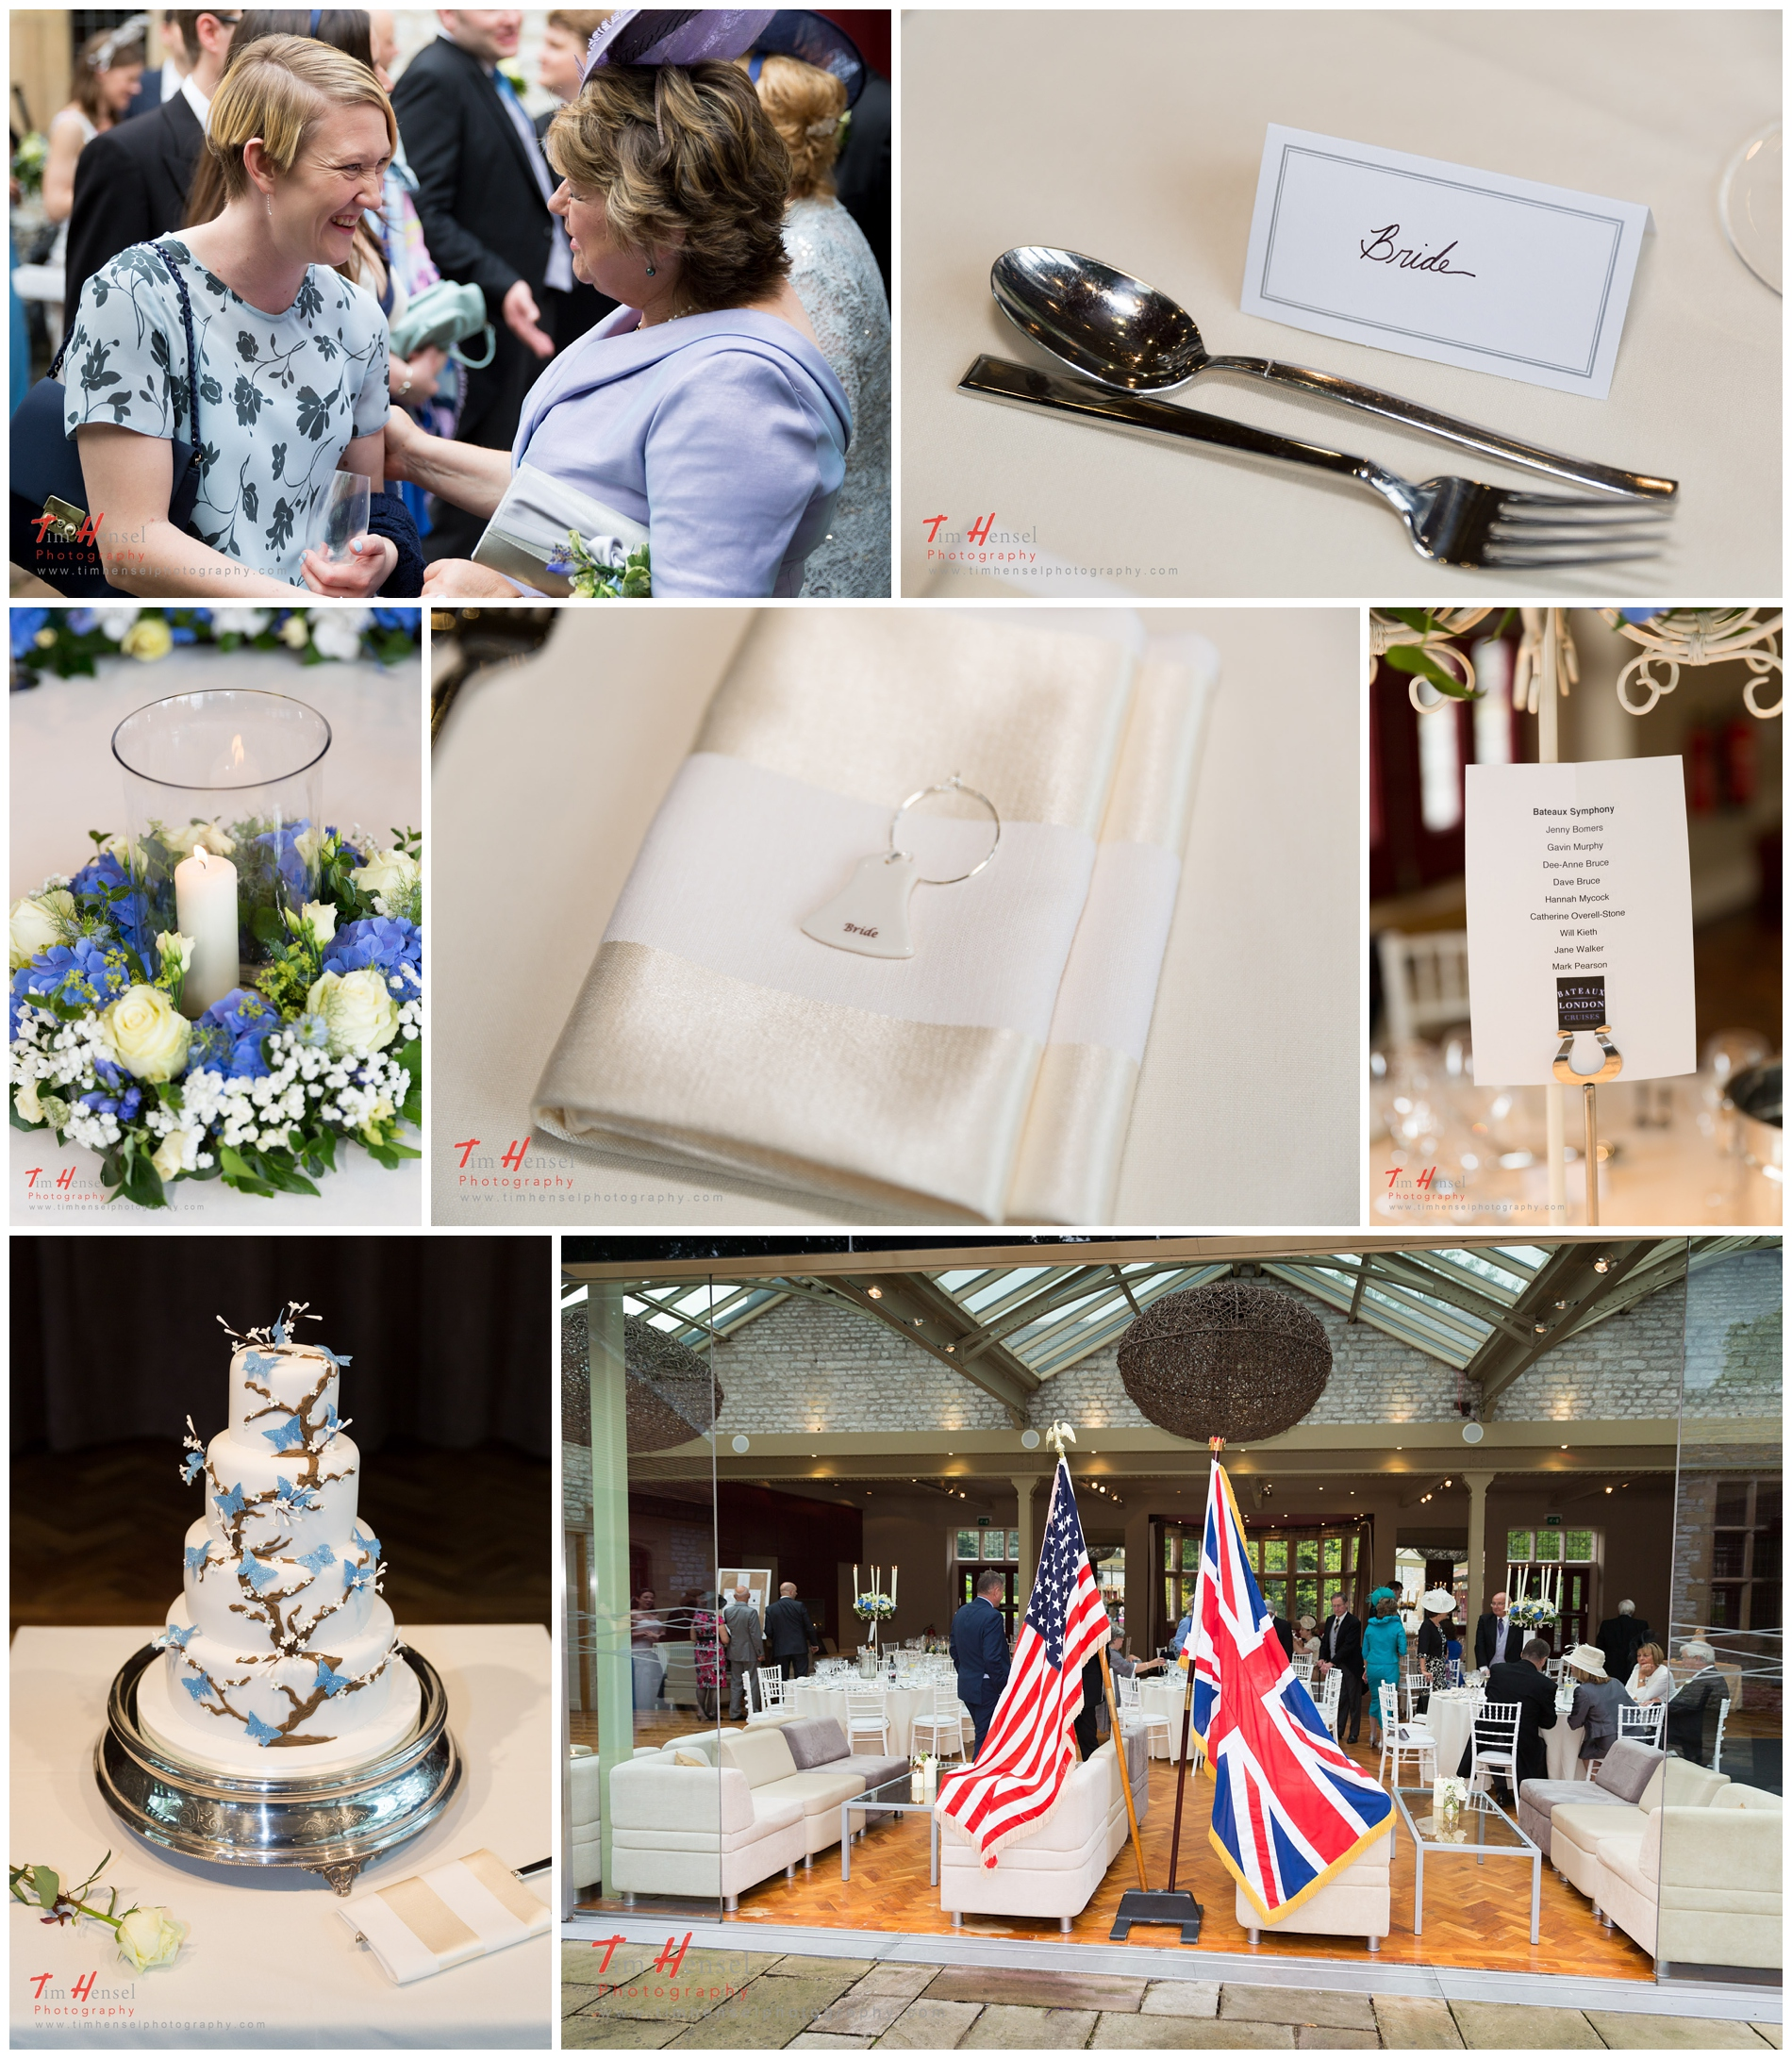 details at the wedding reception at thornbridge hall